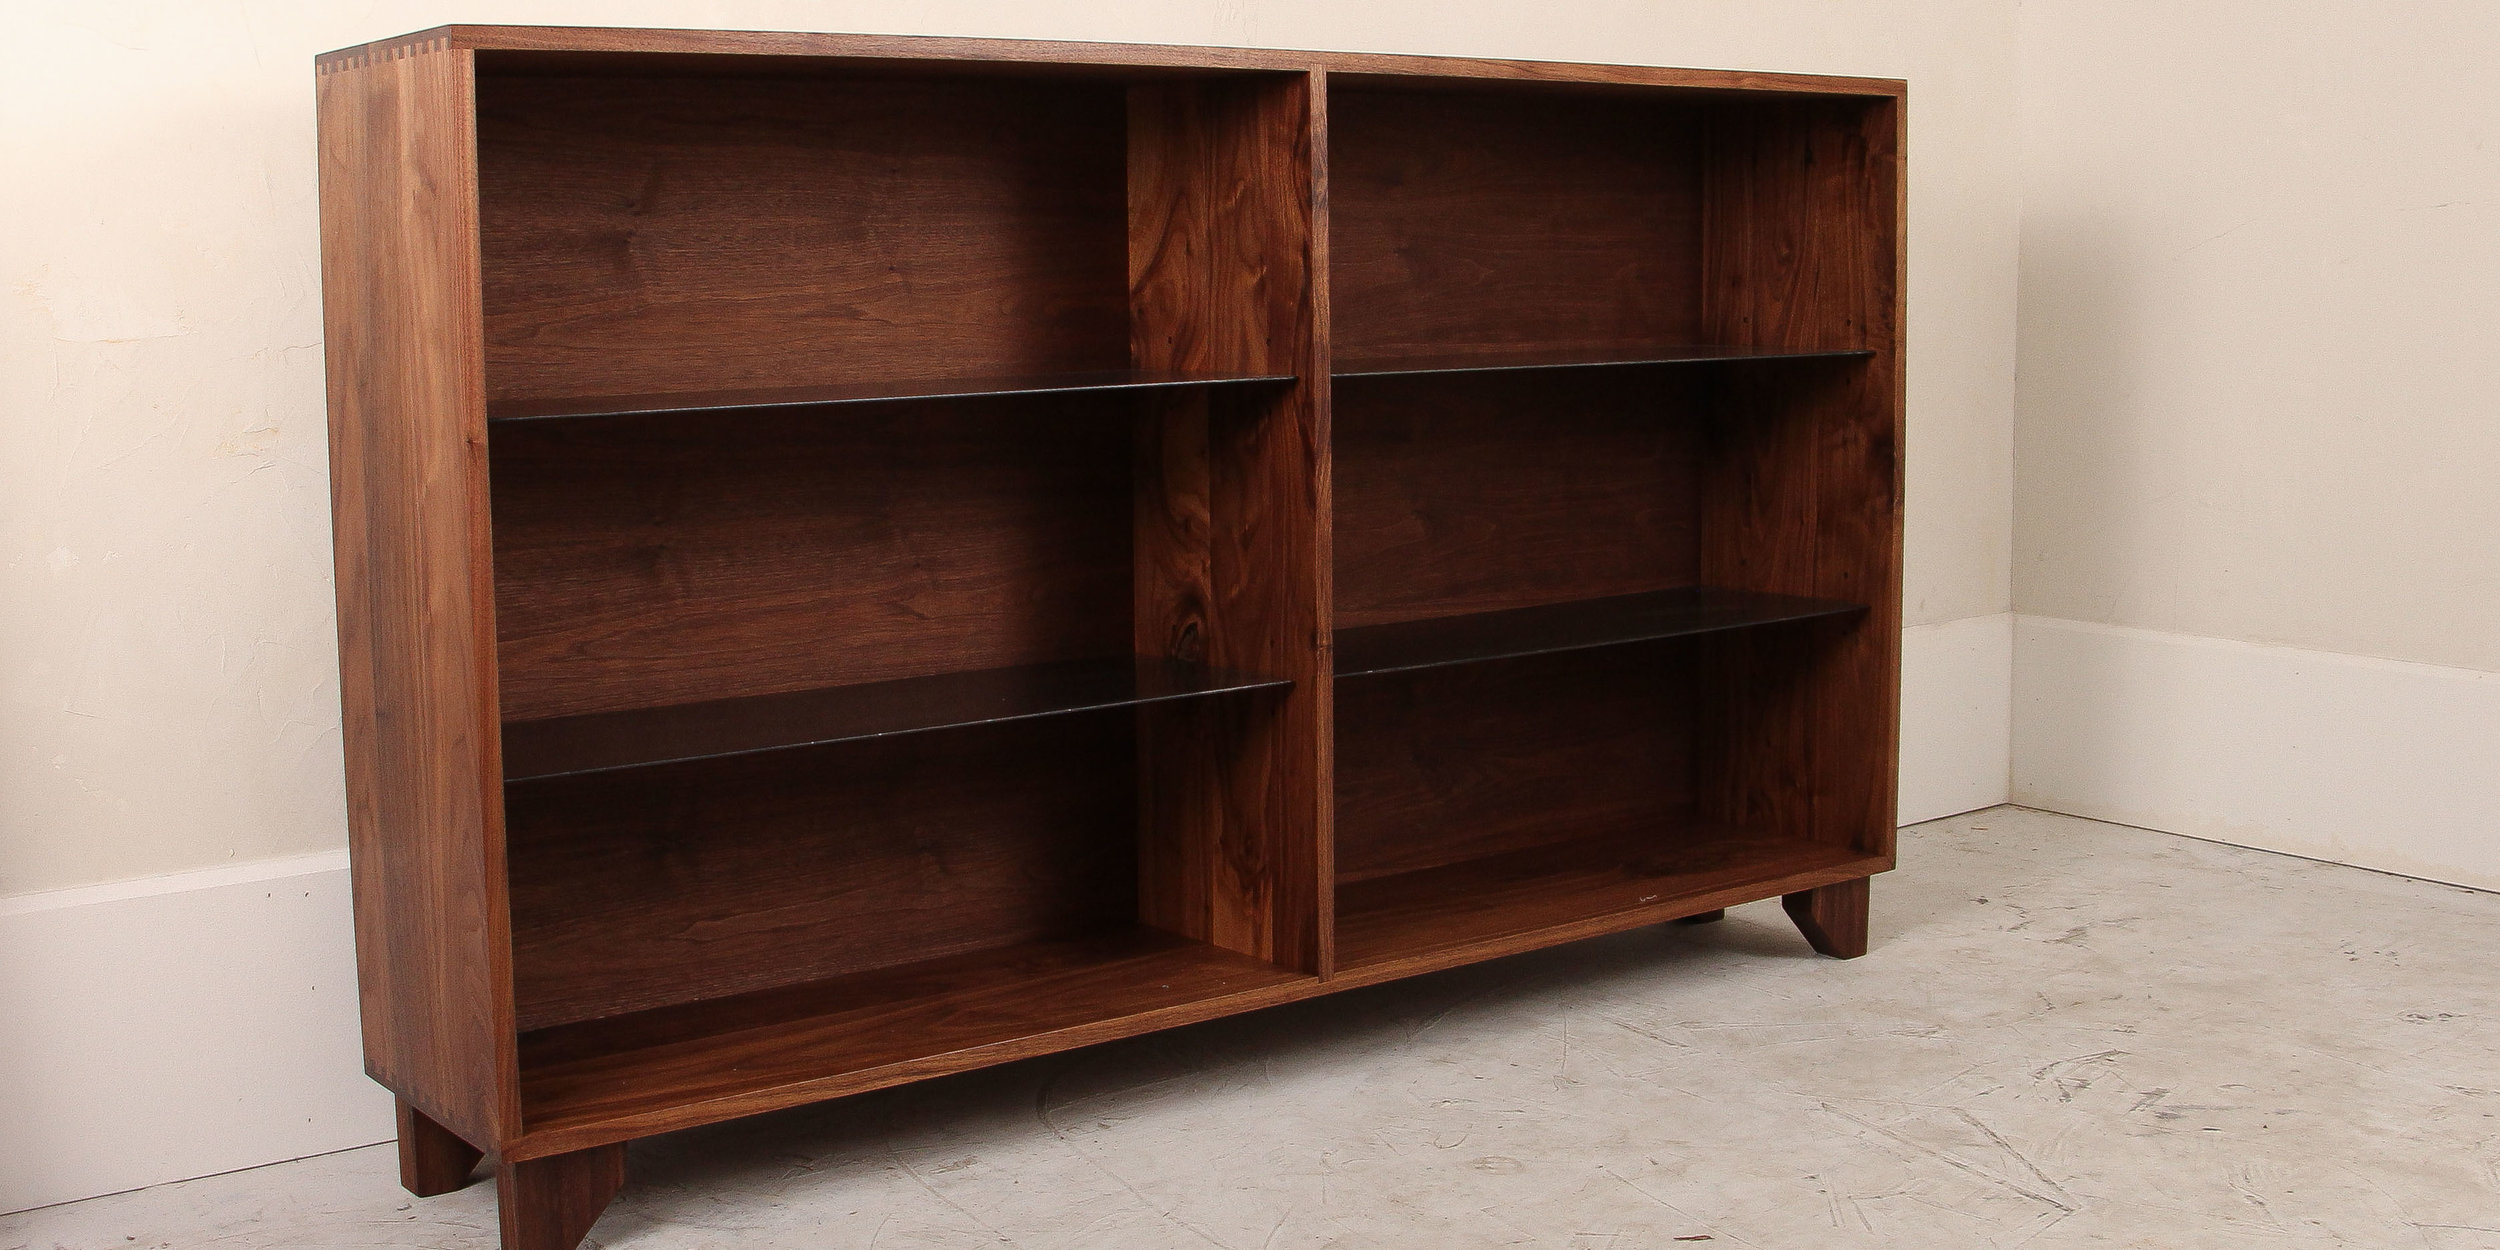 Bookcase_walnut_steel-1.jpg